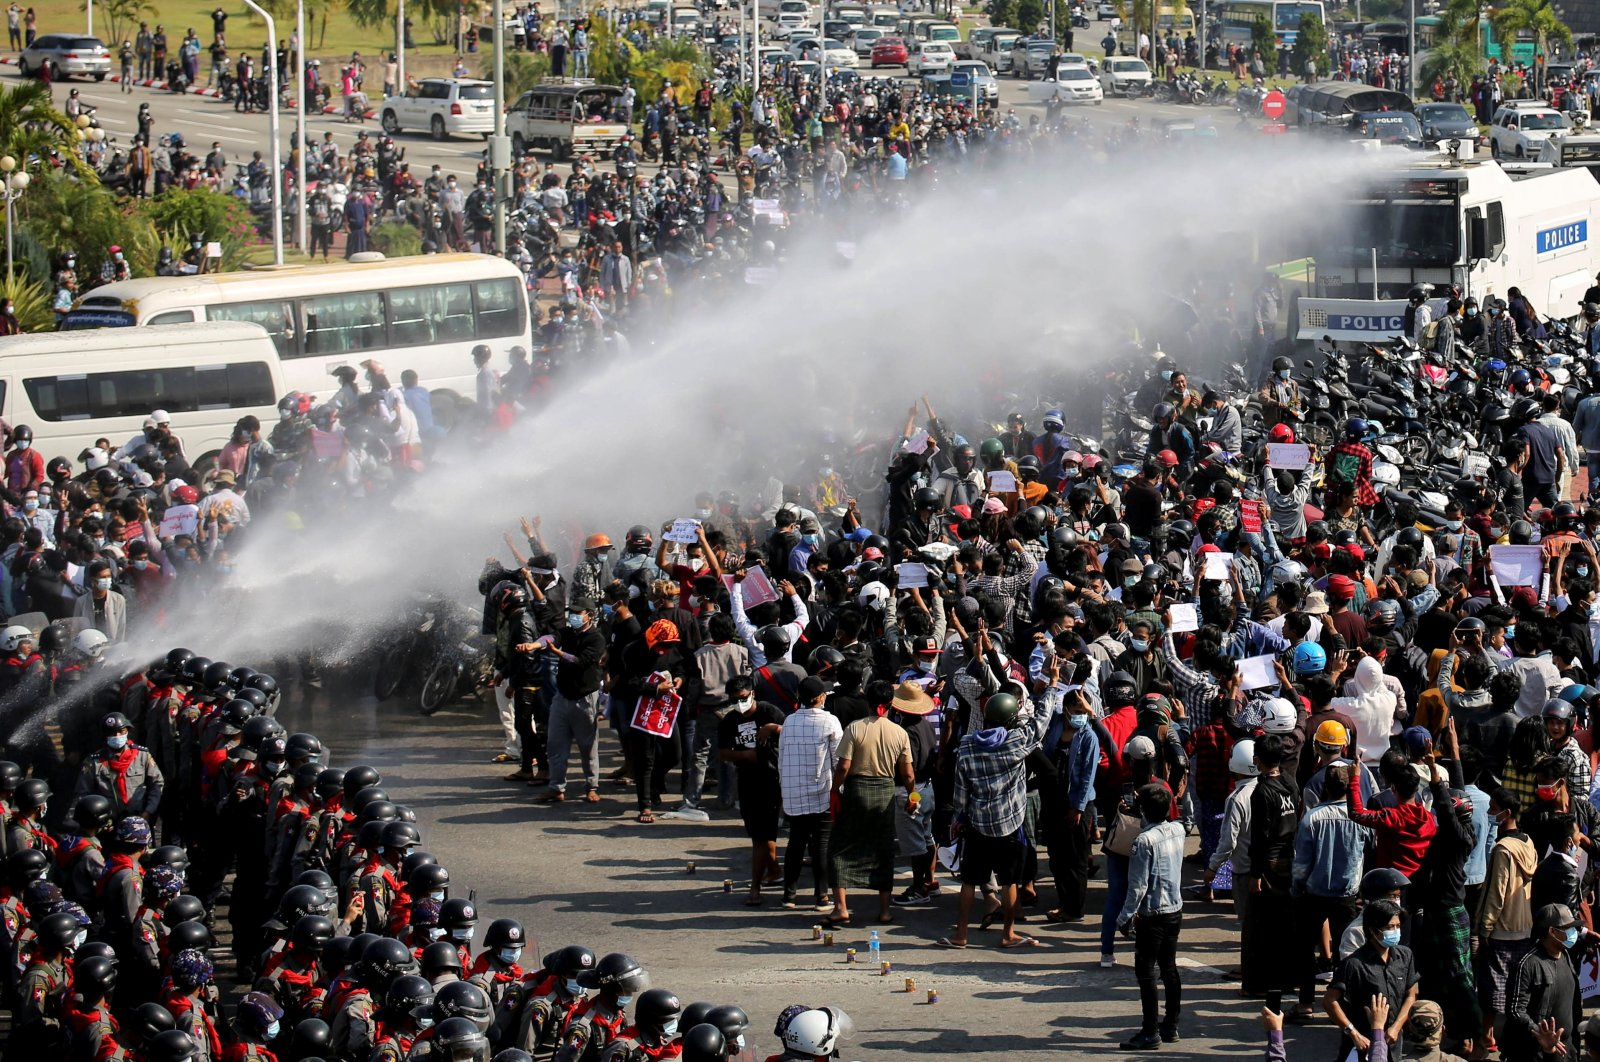 Police fire a water cannon at protesters demonstrating against the coup and demanding the release of elected leader Aung San Suu Kyi, in Naypyitaw, Myanmar, Feb. 8, 2021. (Reuters Photo)